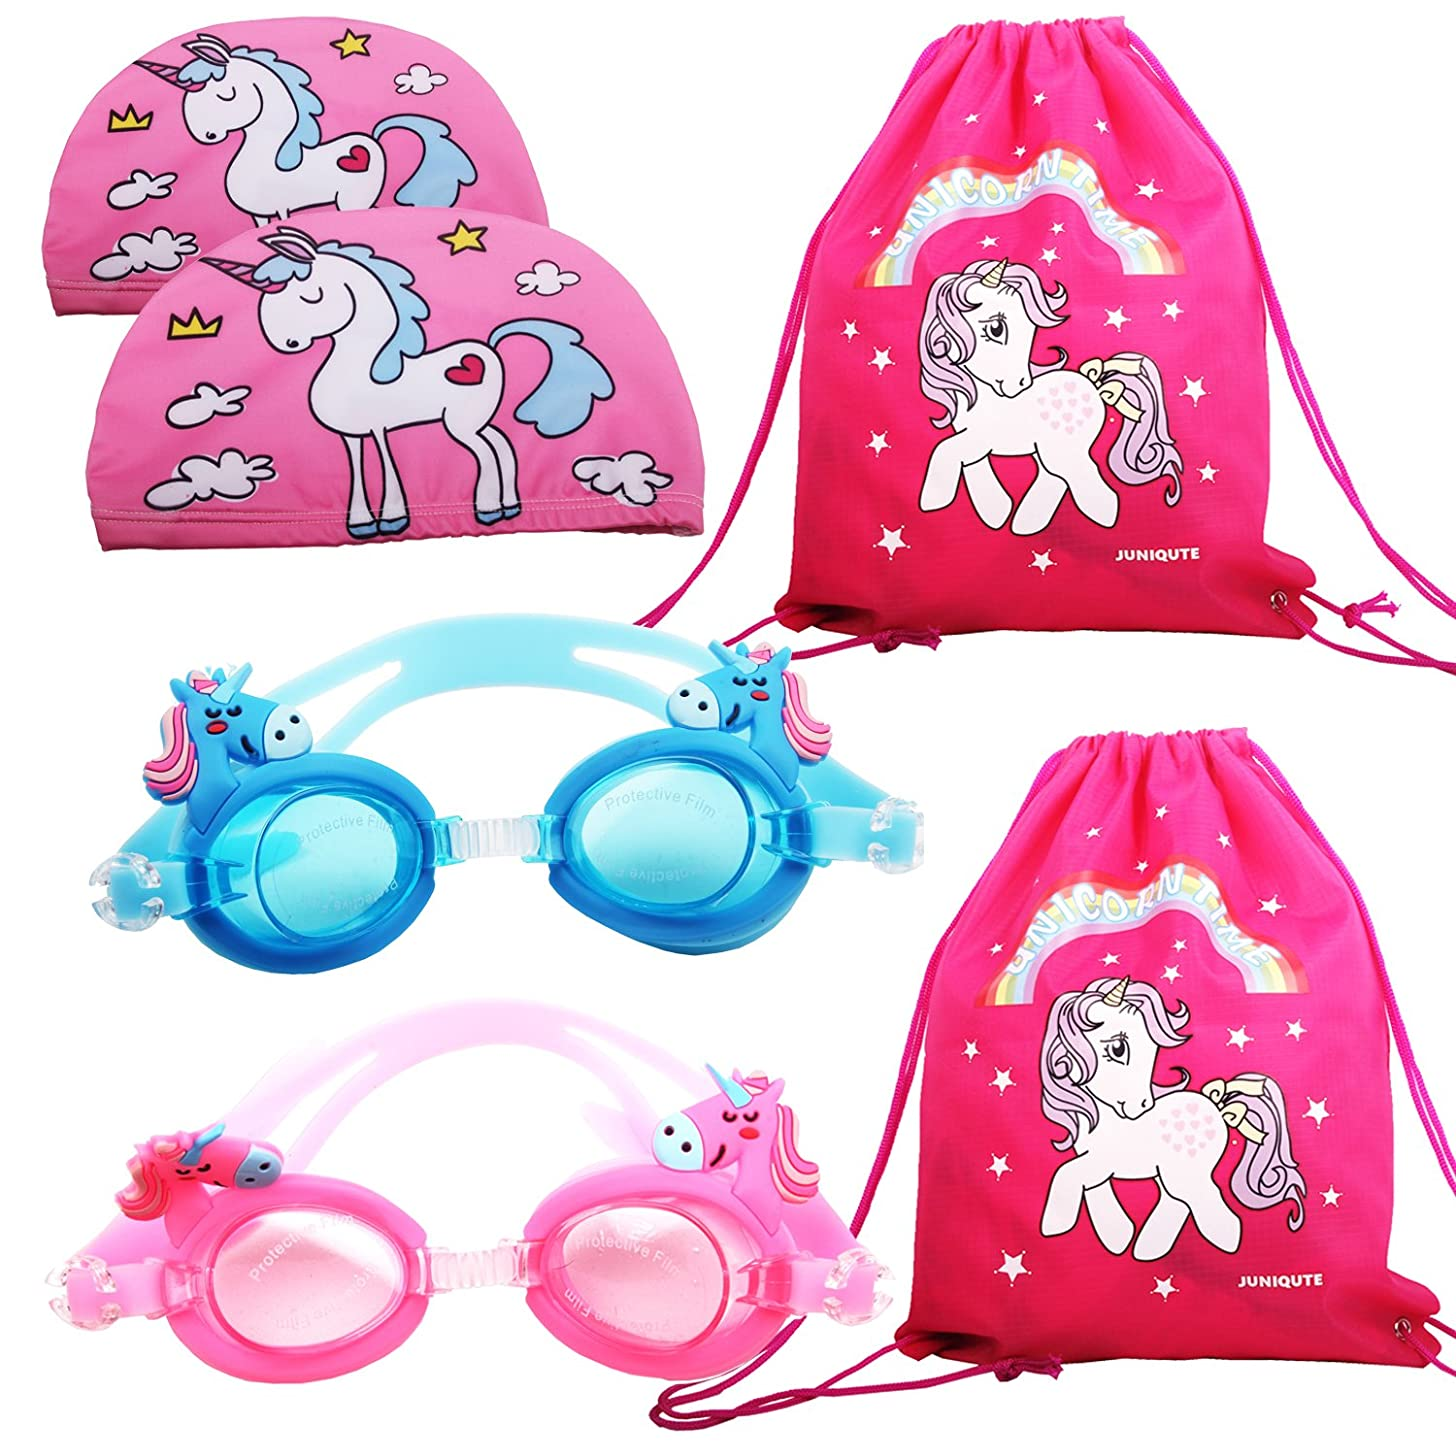 2PCS Kids Unicorn Swim Goggles with 2PCS Unicorn Breathe Swim Cap-Sun Protection Hat and 2PCS unicorn bags, Pack of 6, Swimming Glasses for Girls and Early Teens from 3 to 15 Years Old, Anti-Fog, Wate